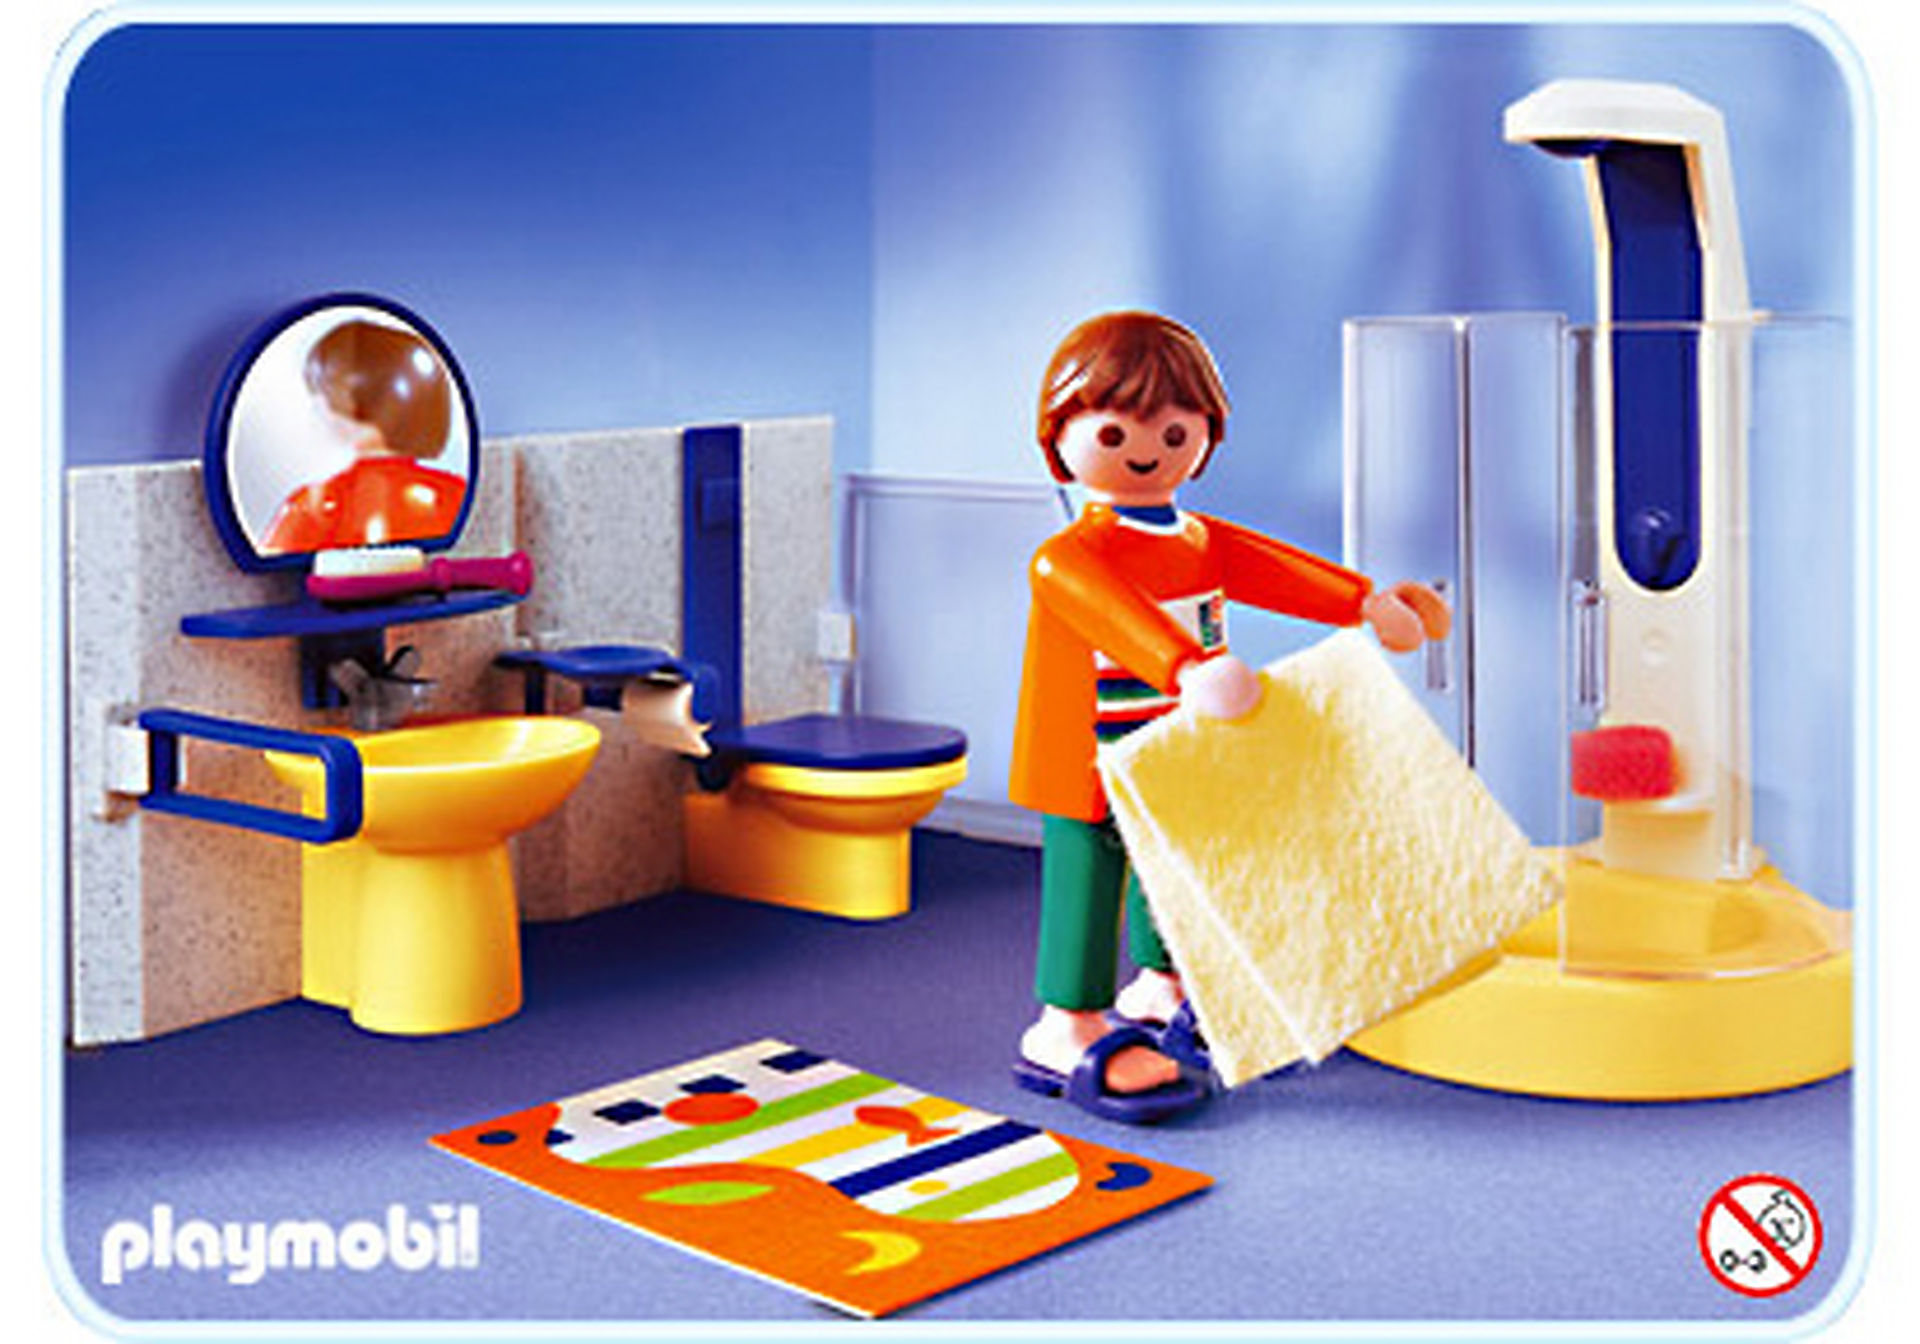 http://media.playmobil.com/i/playmobil/3969-A_product_detail/Bad mit Dusche